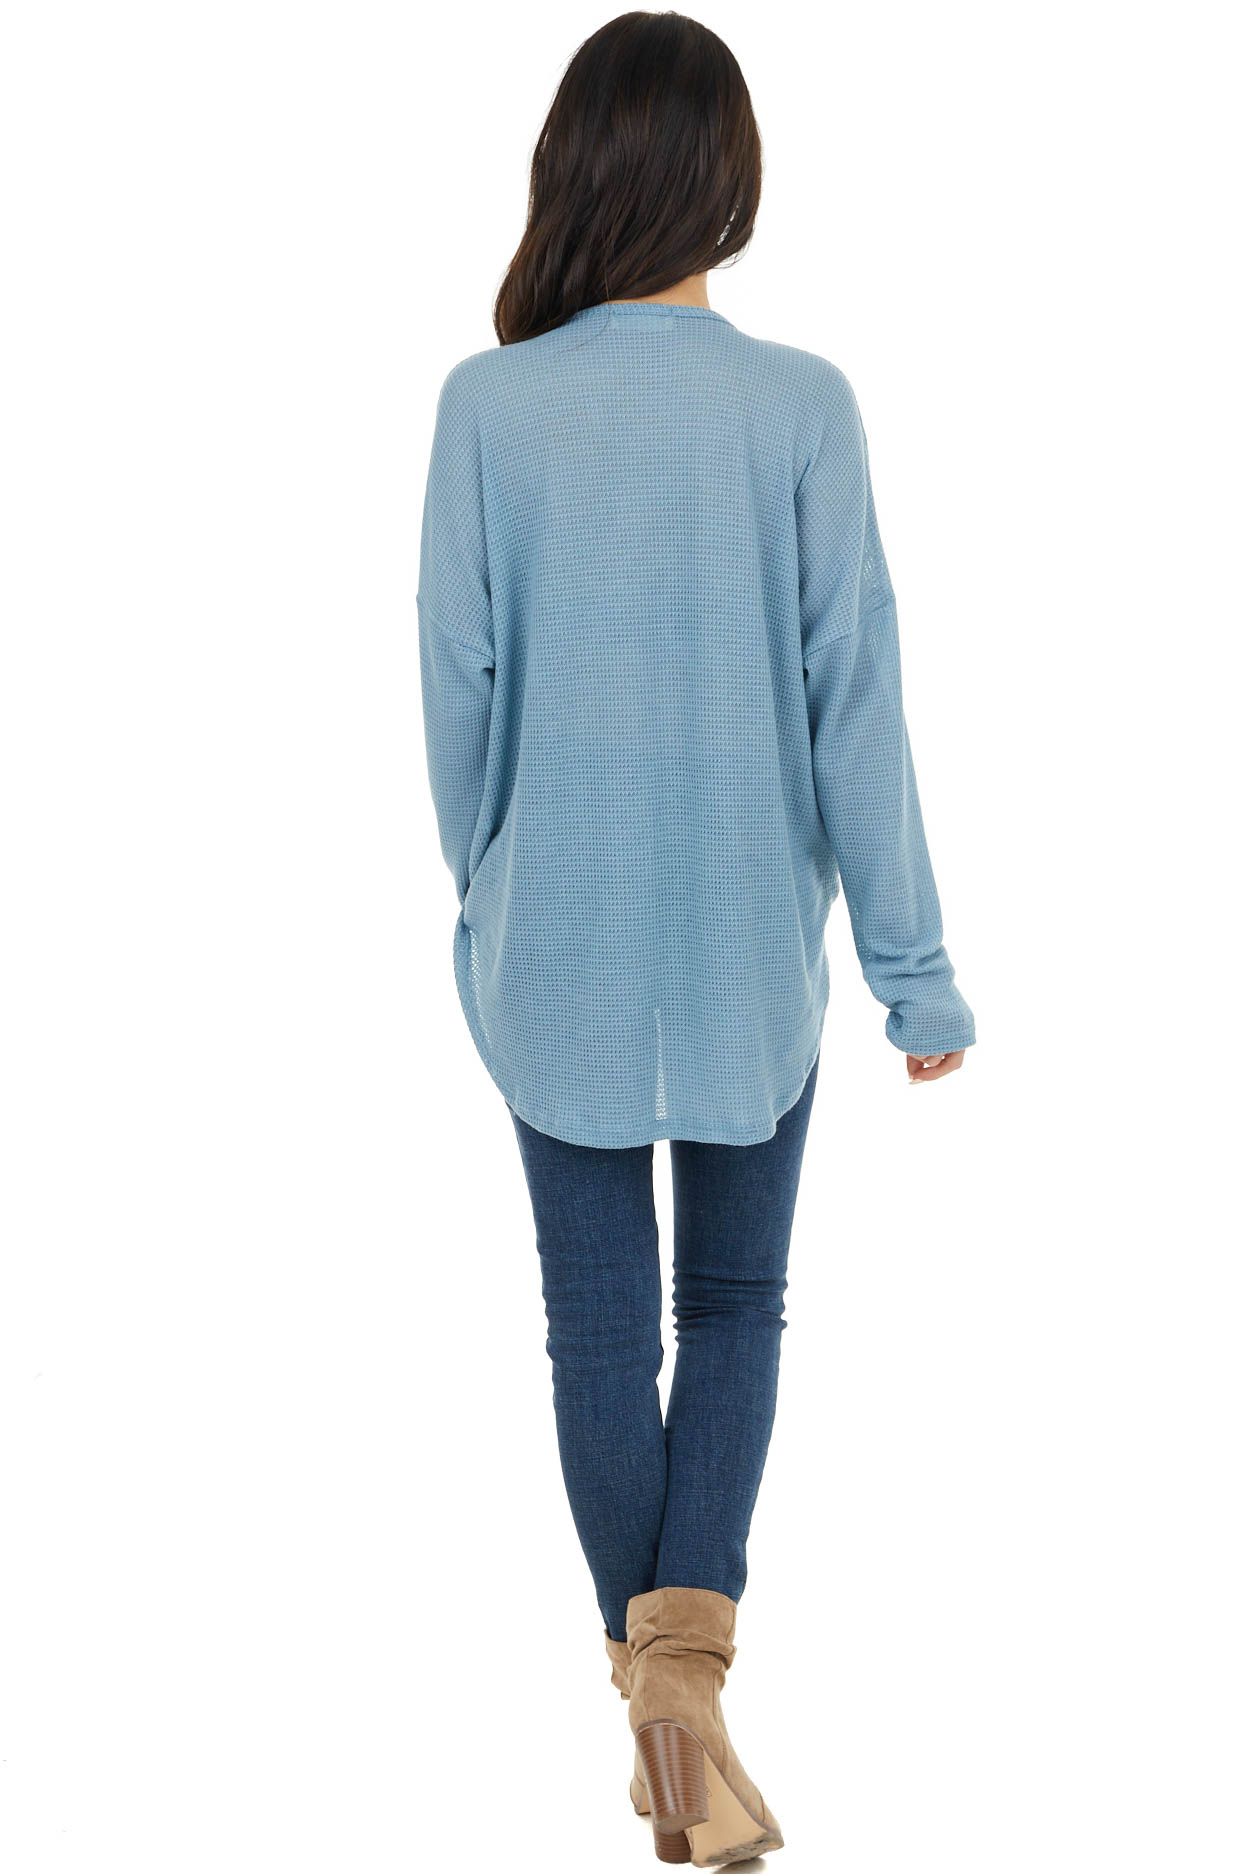 Powder Blue Waffle Knit Surplice Top with Criss Cross Detail